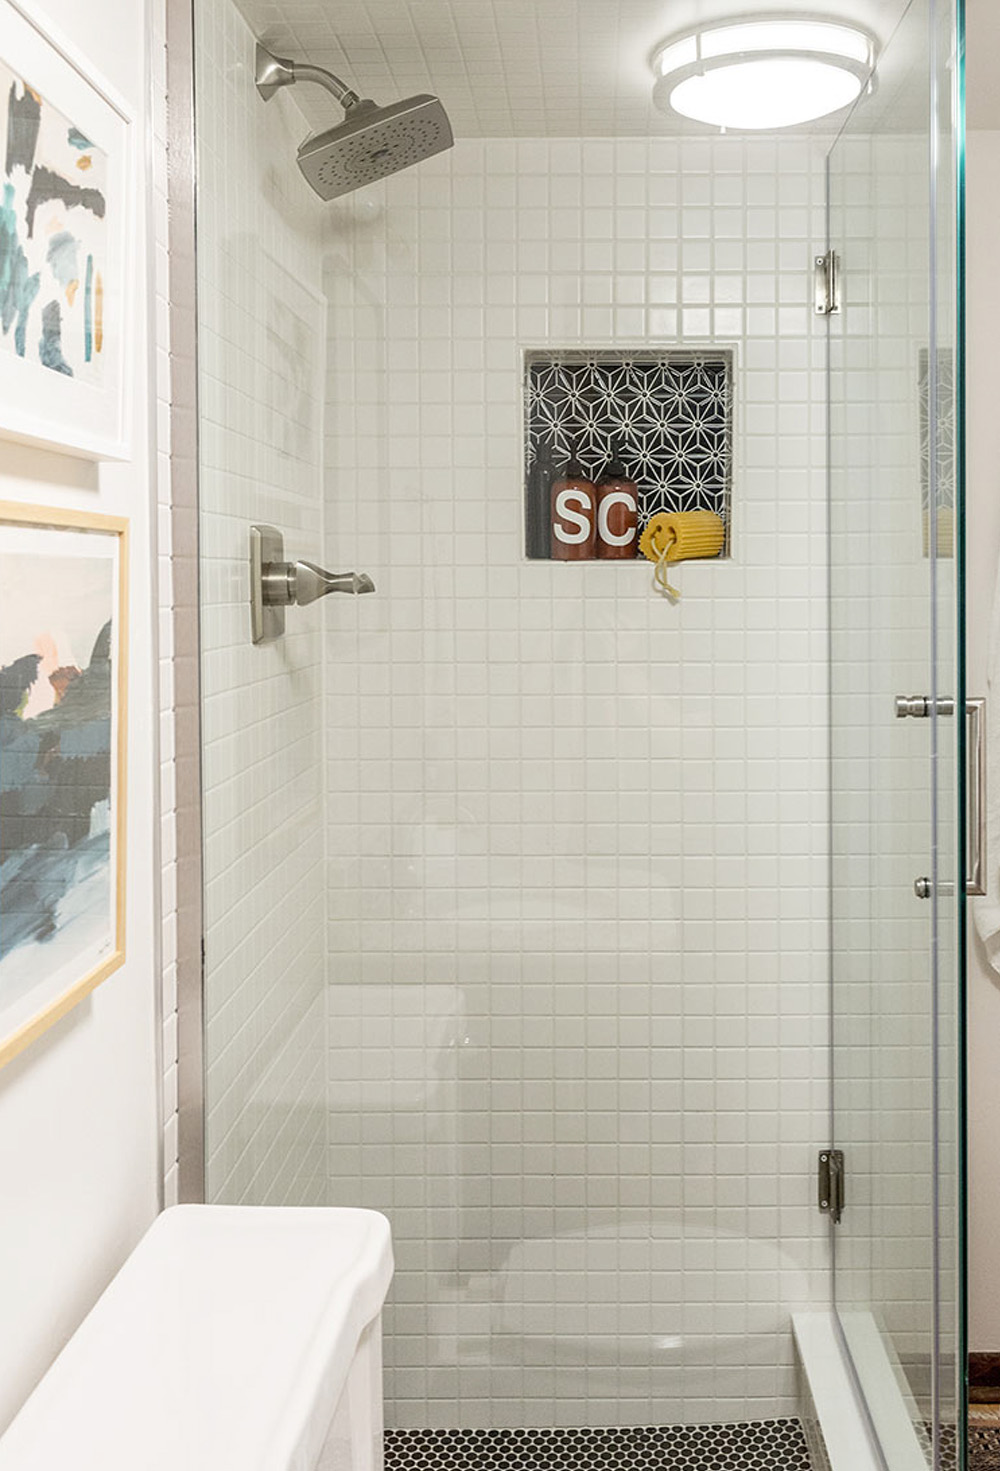 A glass shower with silver faucet and shower head.